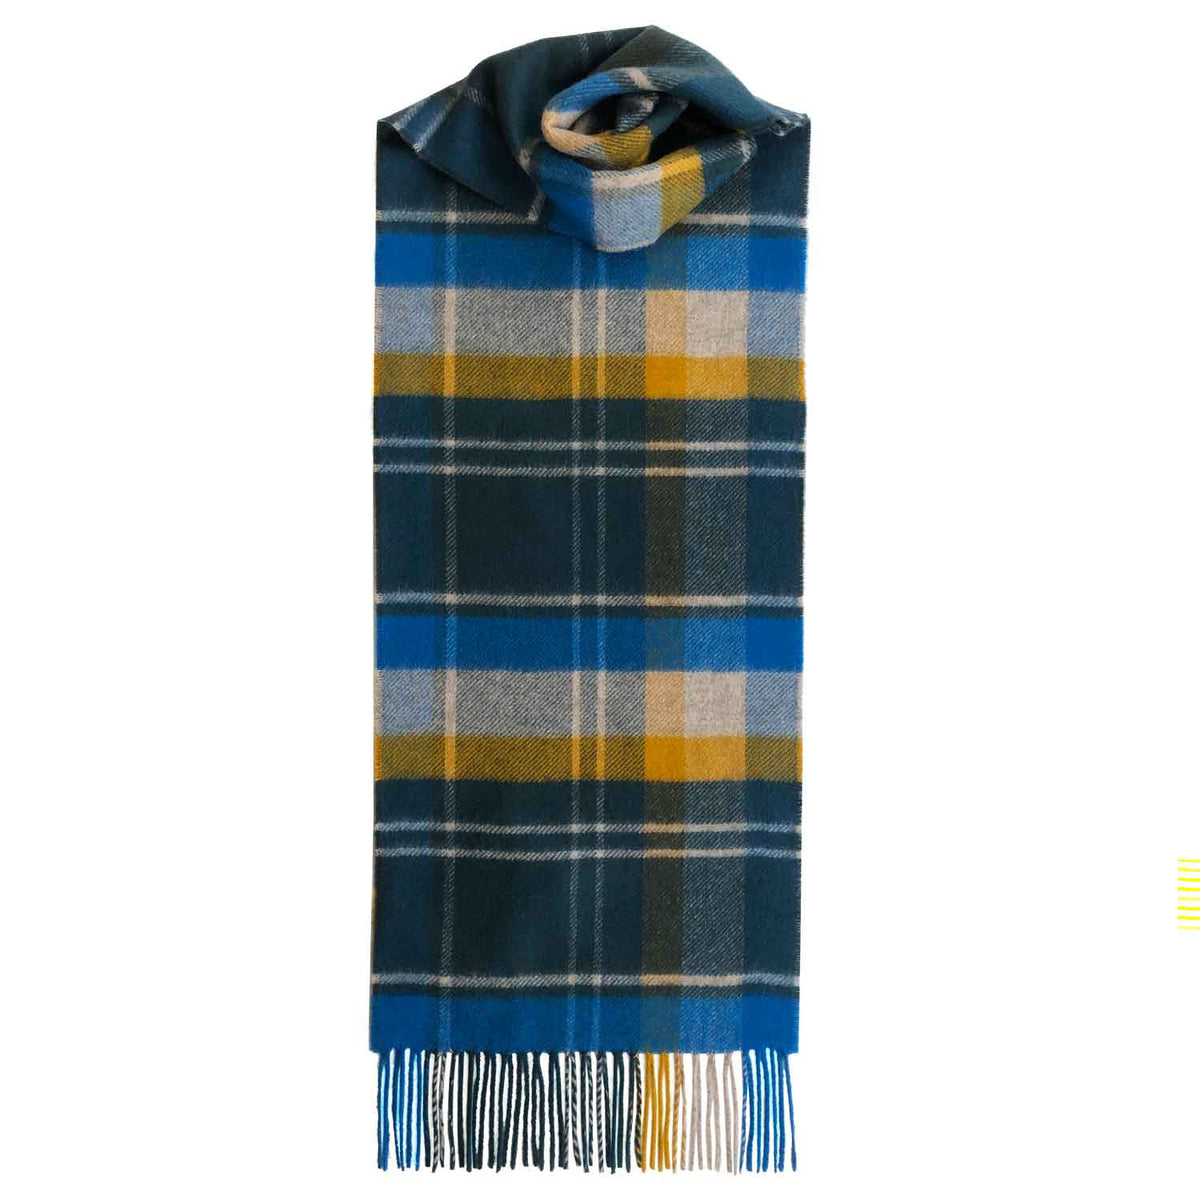 Lomond Cashmere | Blue Mustard Yellow | Check Cashmere Scarf With Fringes | Made in Scotland | Shop at The Cashmere Choice | London